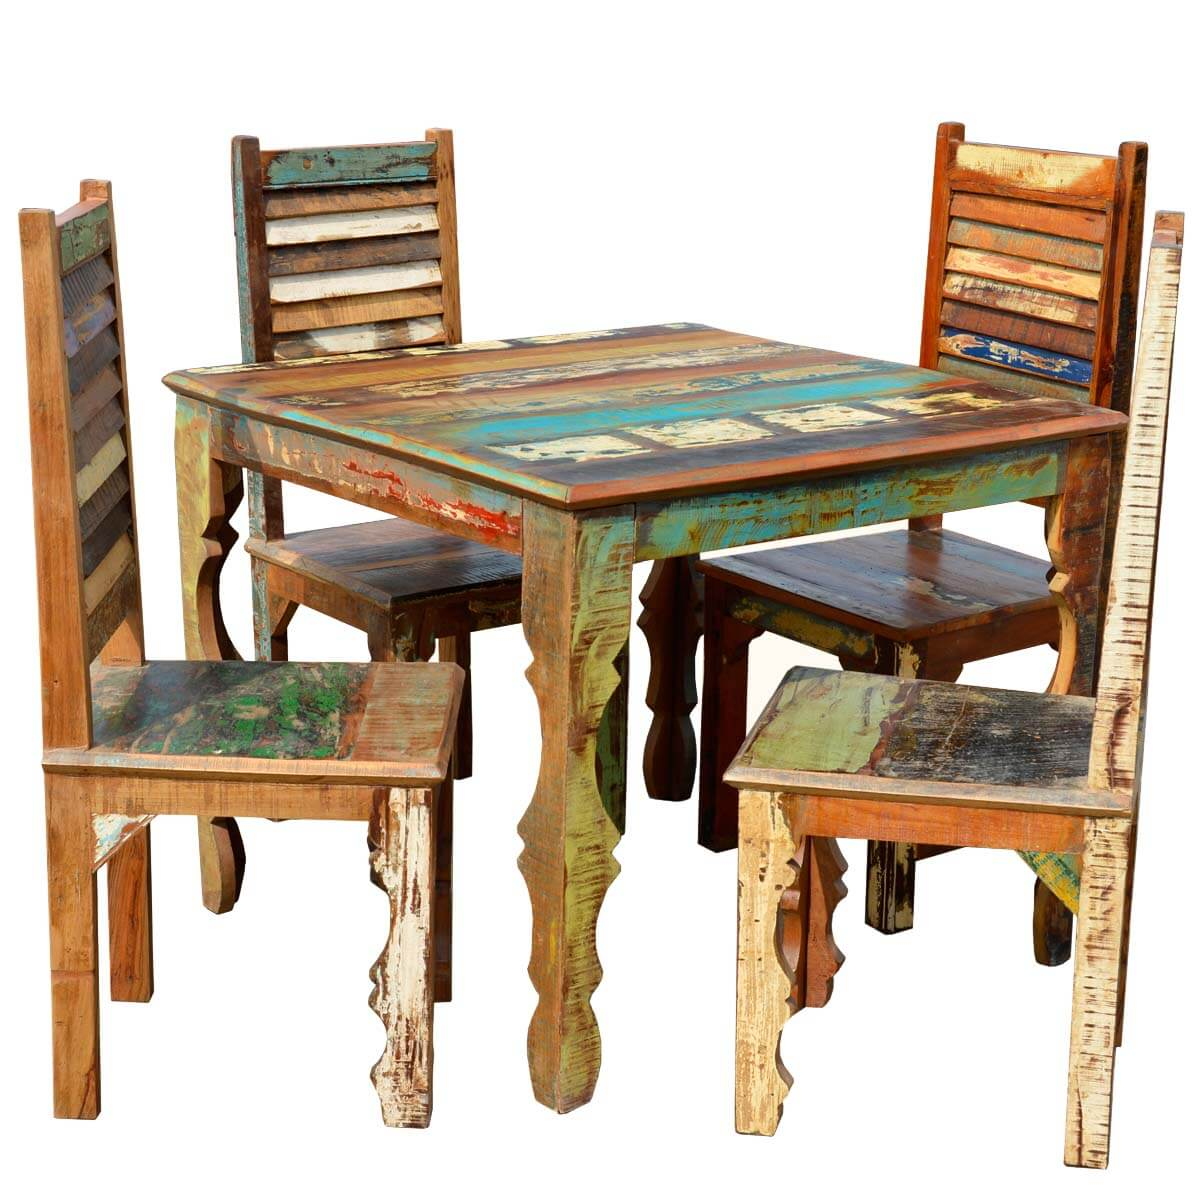 Kitchen Tables With Benches And Chairs Table Wood: Rustic Reclaimed Wood Dining Table W Shutter Back Chairs